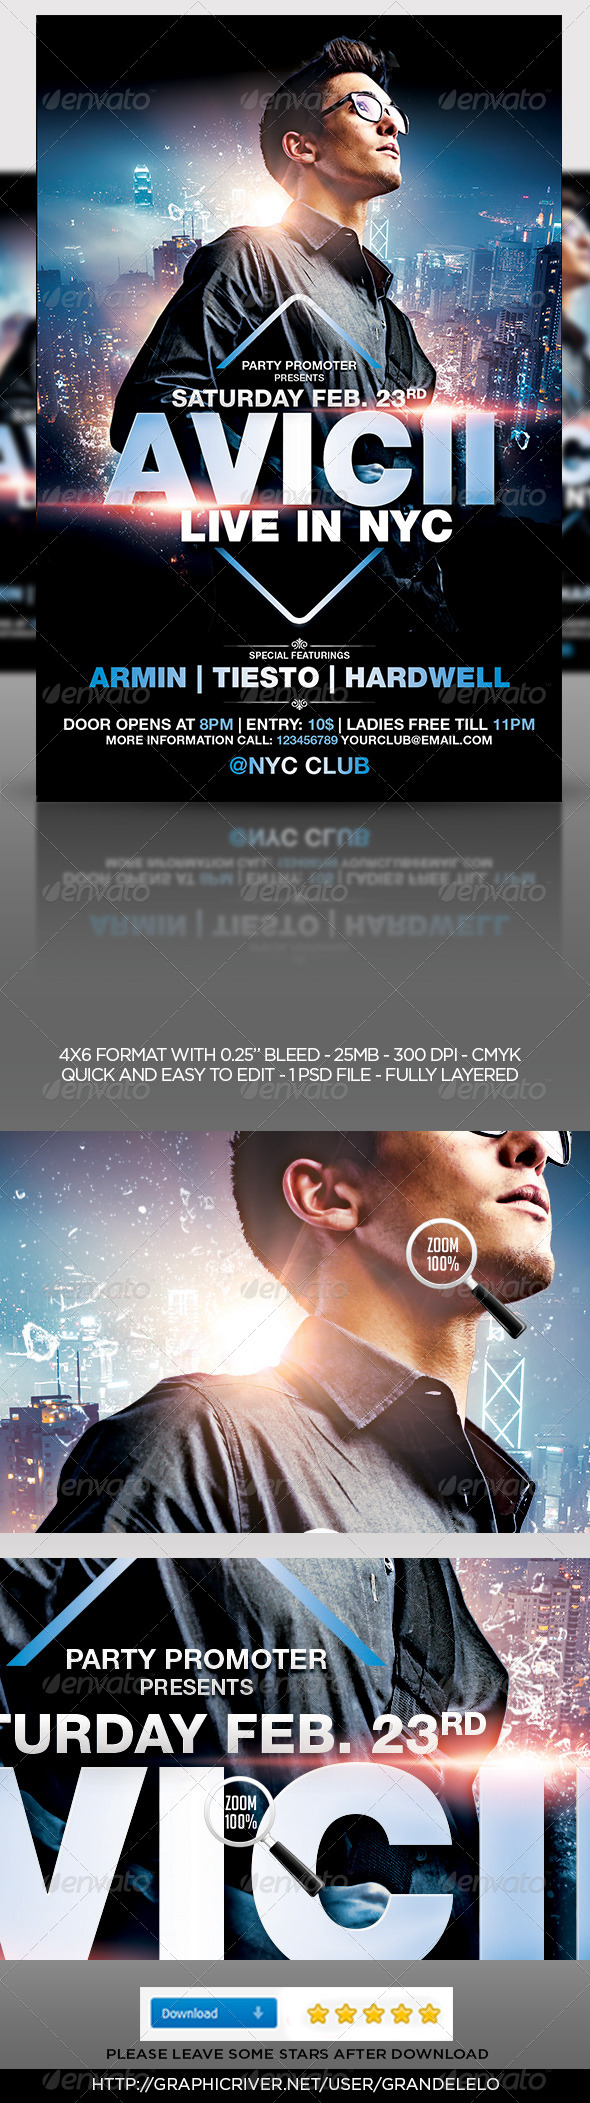 GraphicRiver House DJ Party Flyer Template 6774107